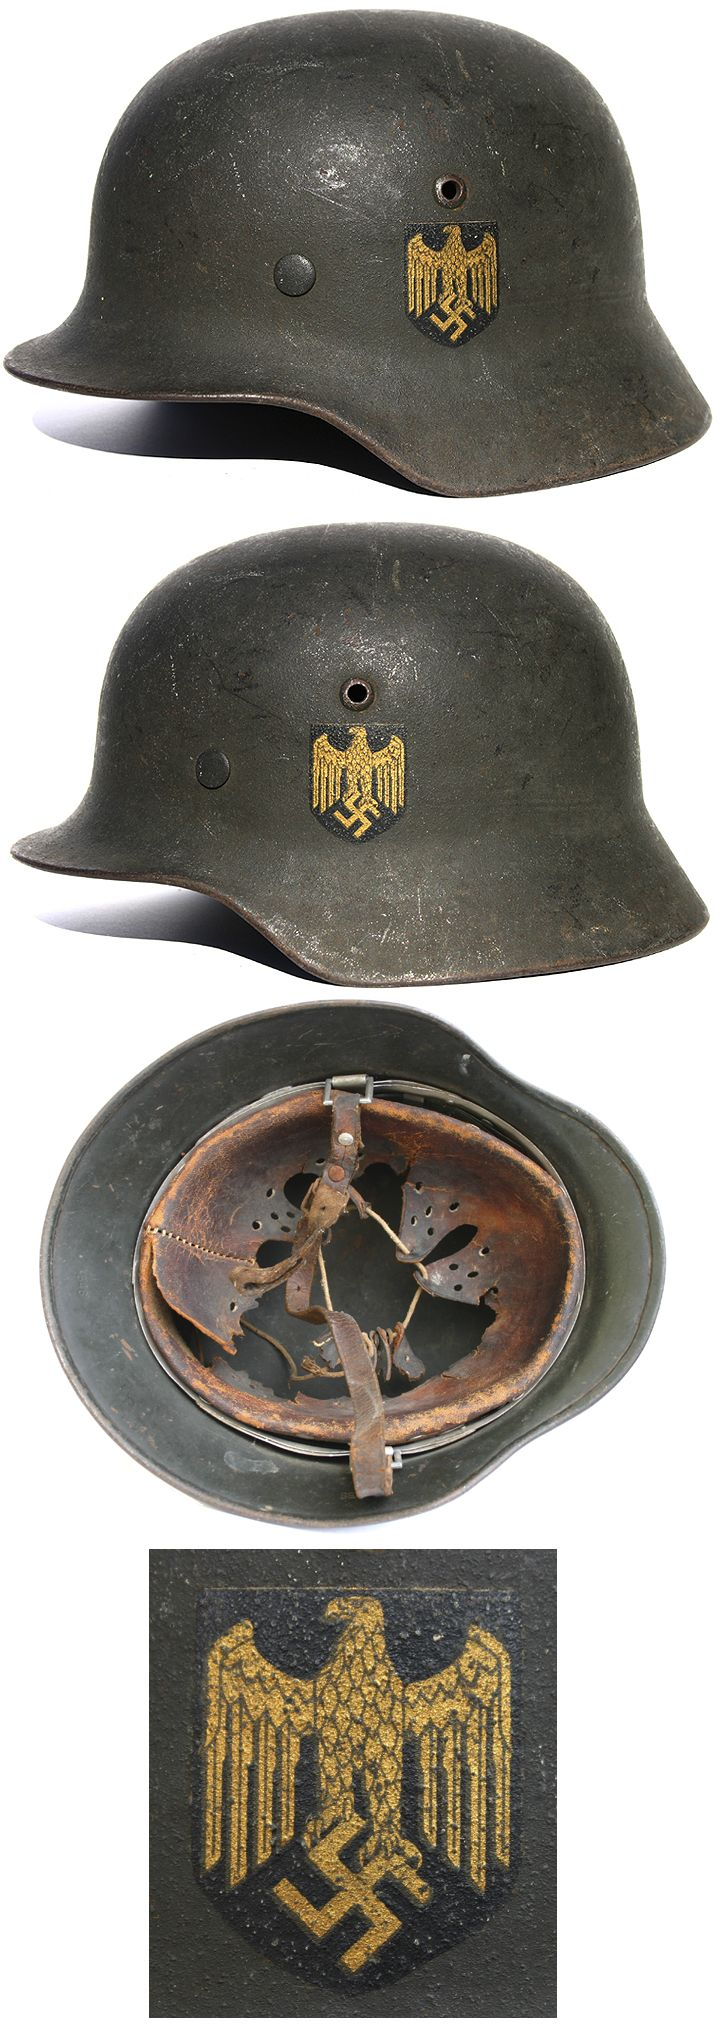 This M1935 single decal helmet was captured in Le Havre, France in 1944 by Technical Sergeant Philip Schumacher who was assigned to the European Theatre of Operations Transport Headquarters unit.  The helmet was selected as a souvenir from a group of captured German equipment.  The helmet features the typical field green textured surface found on most Wehrmacht helmets produced between 1940 and 1941.